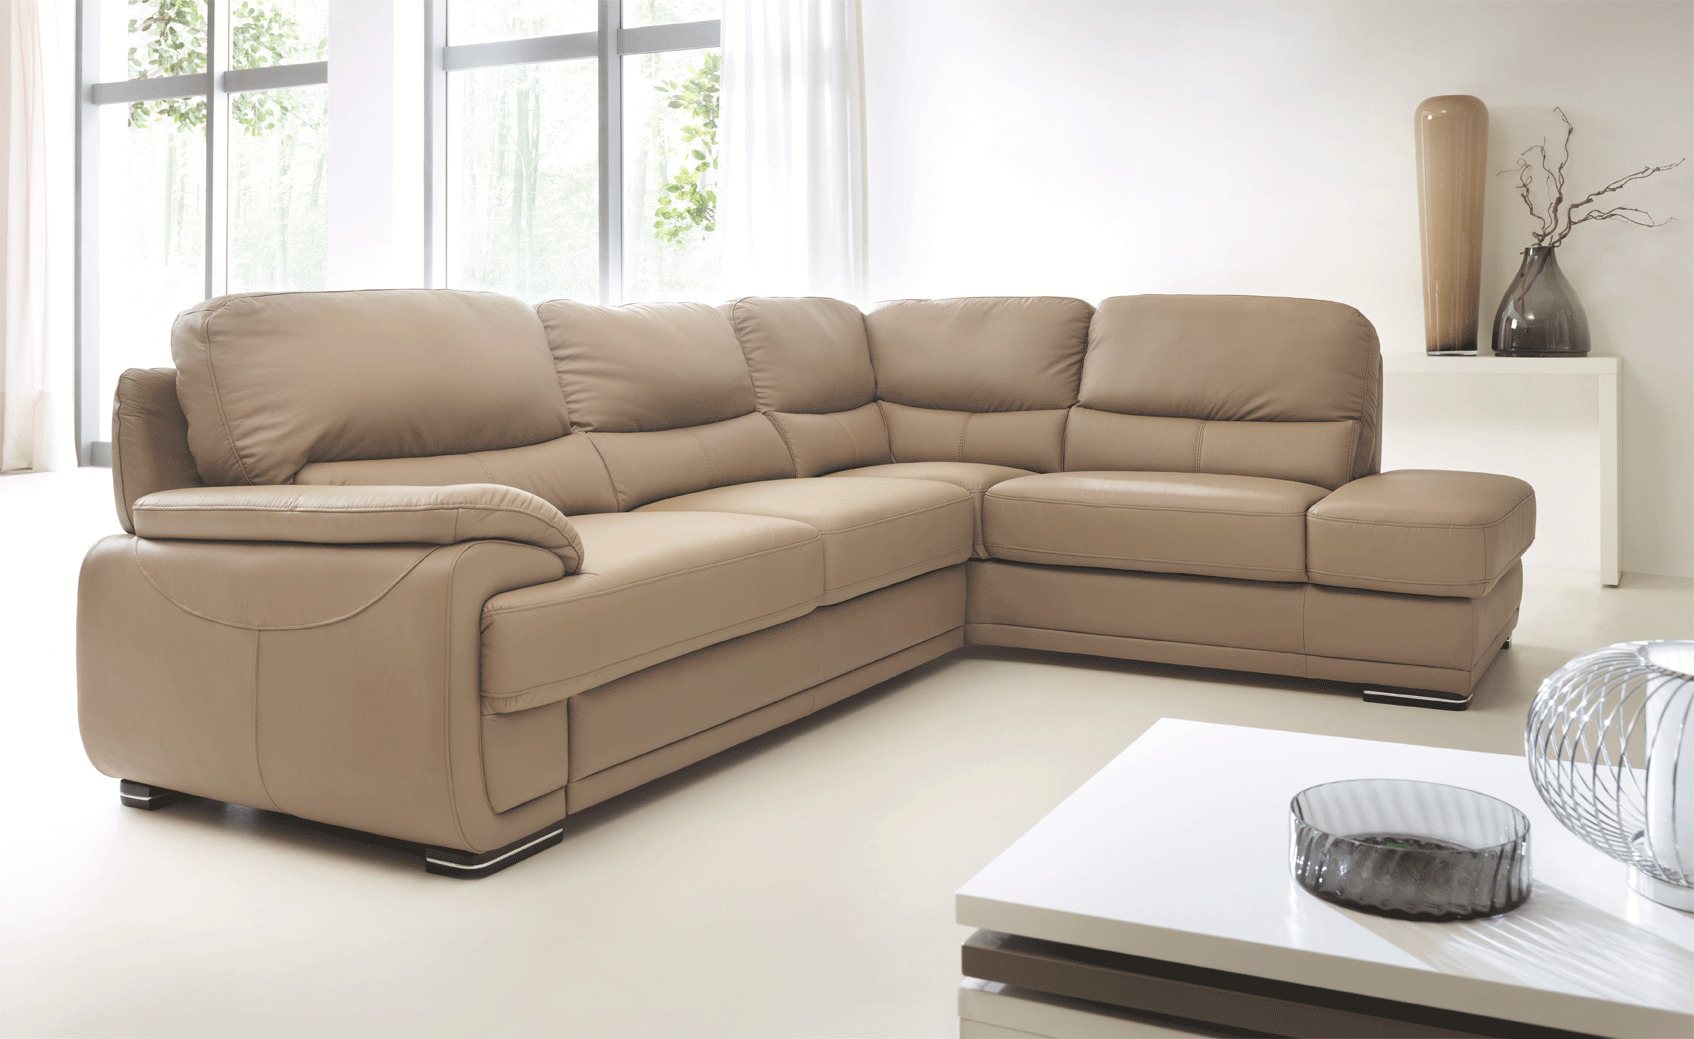 sofa beds spain how to clean and condition leather real sectional sleeper with pull out bed kansas